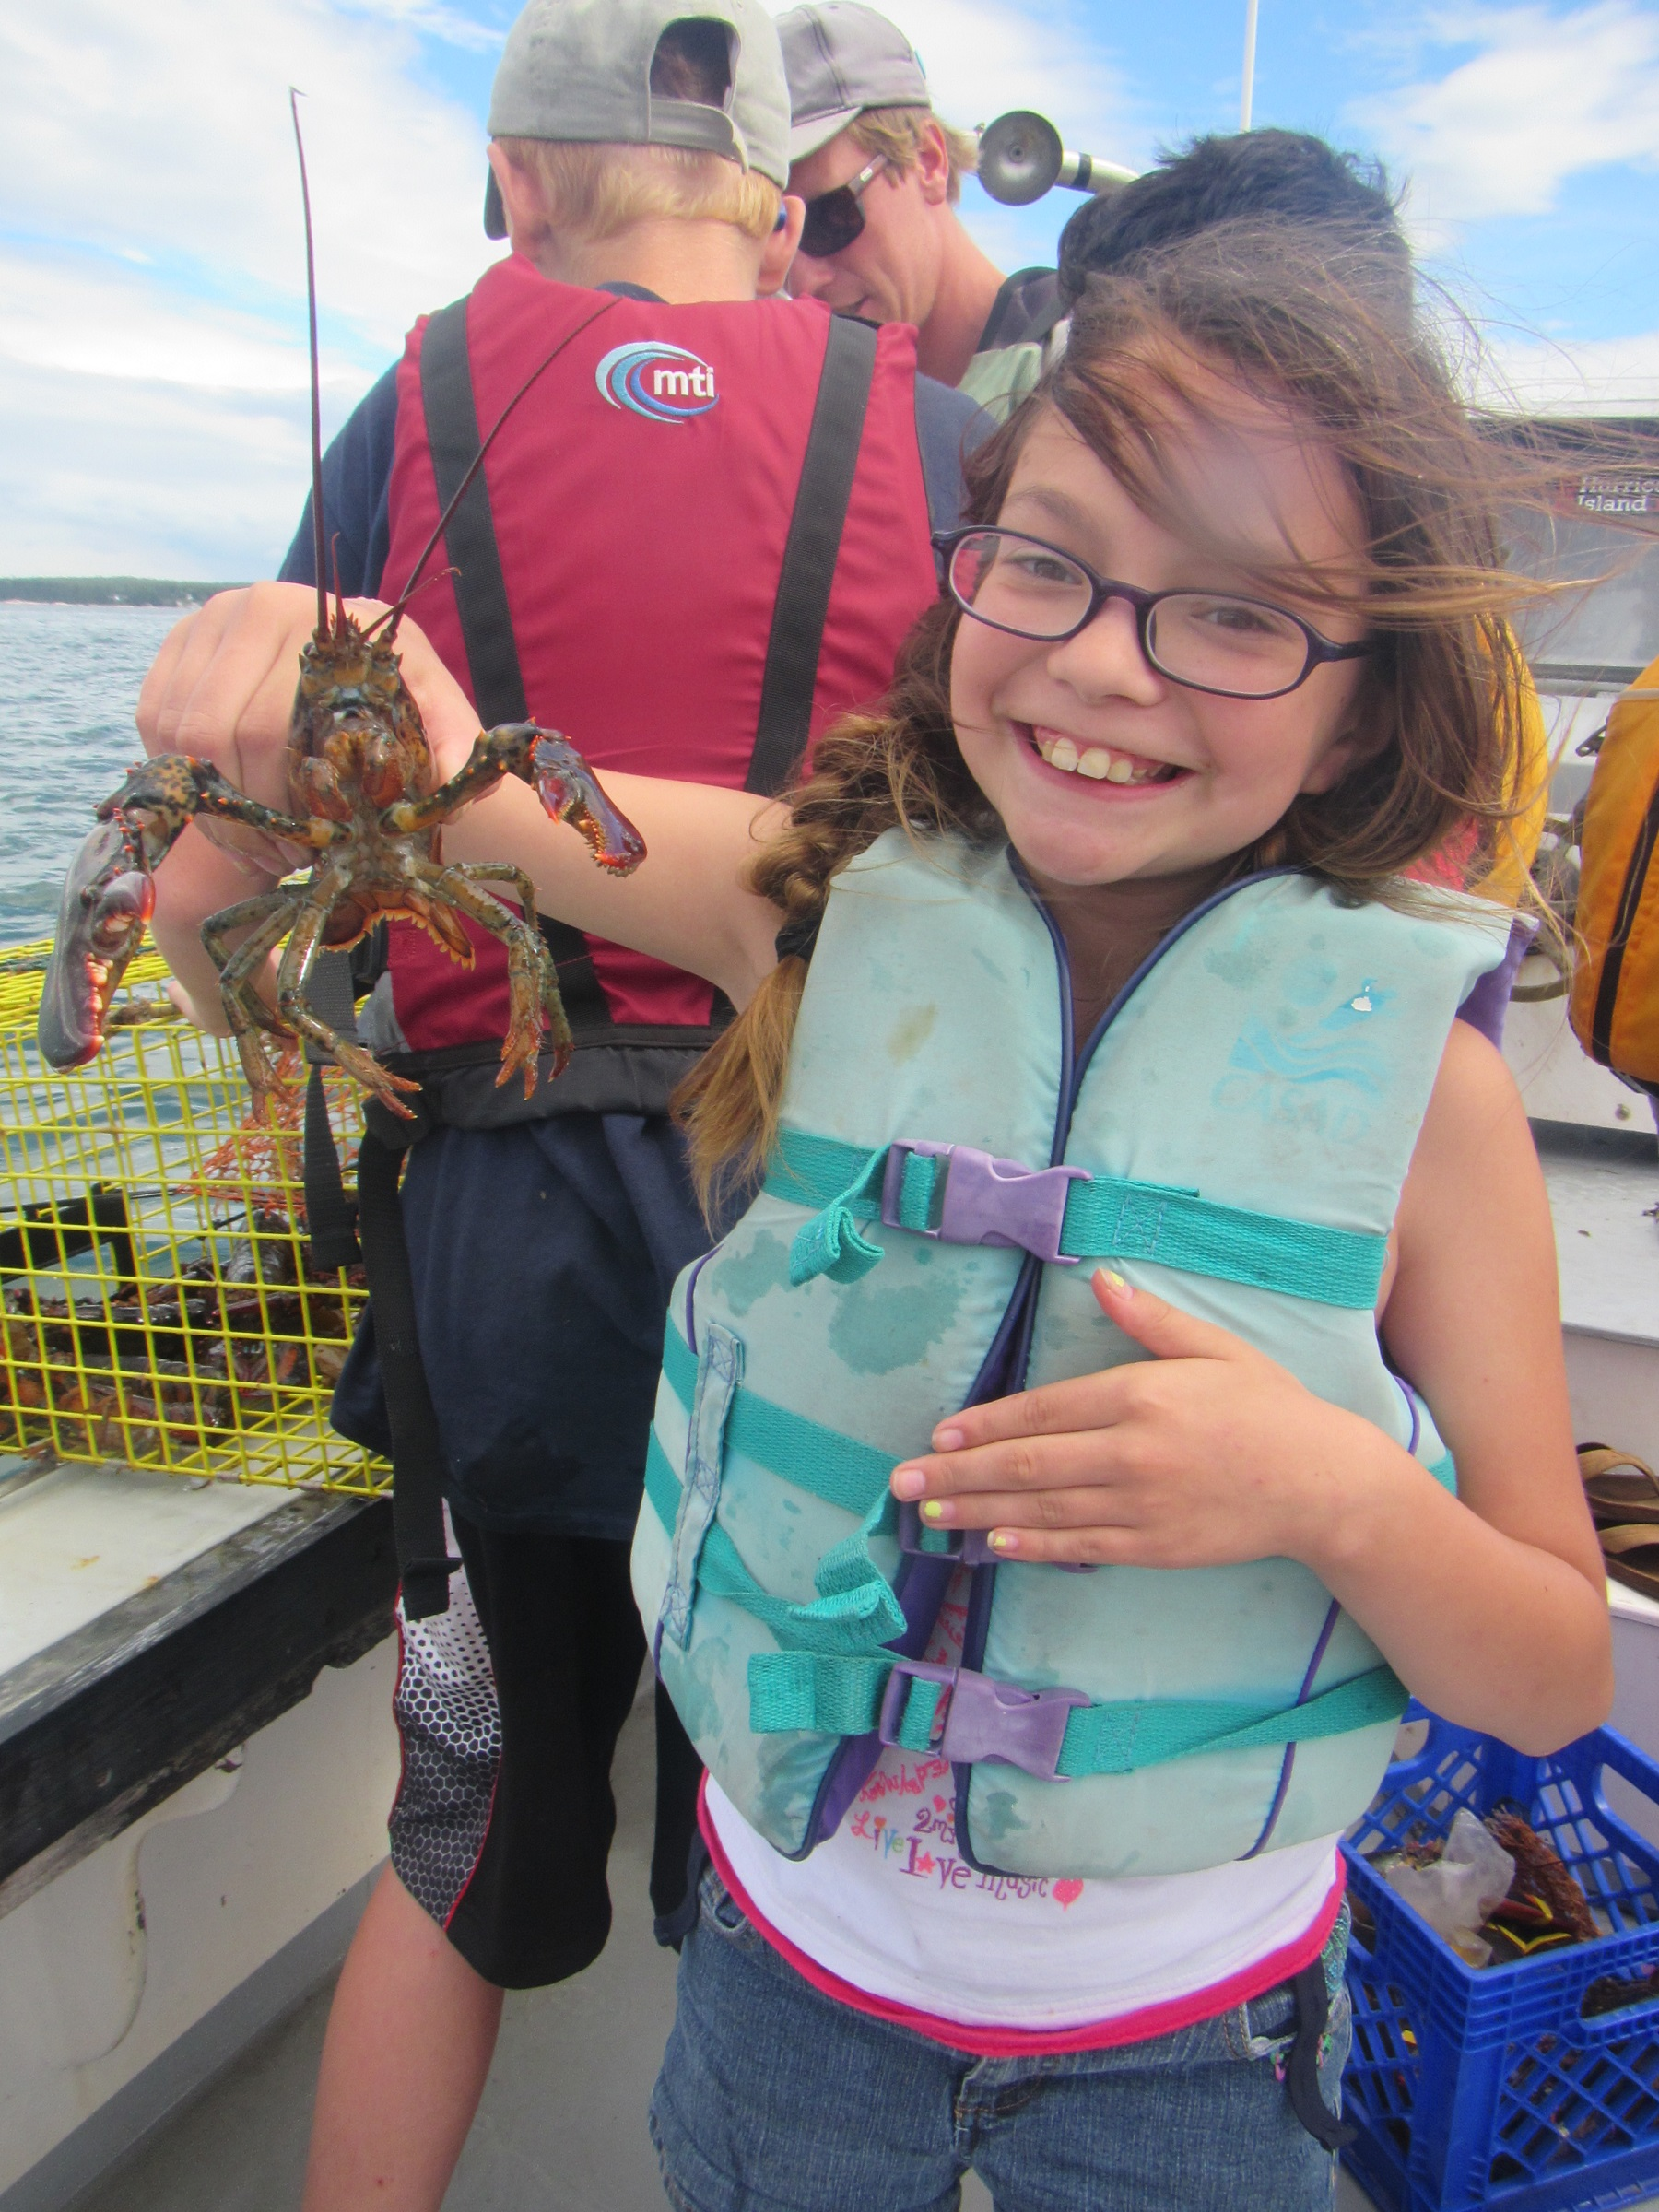 Fun on the lobster boat